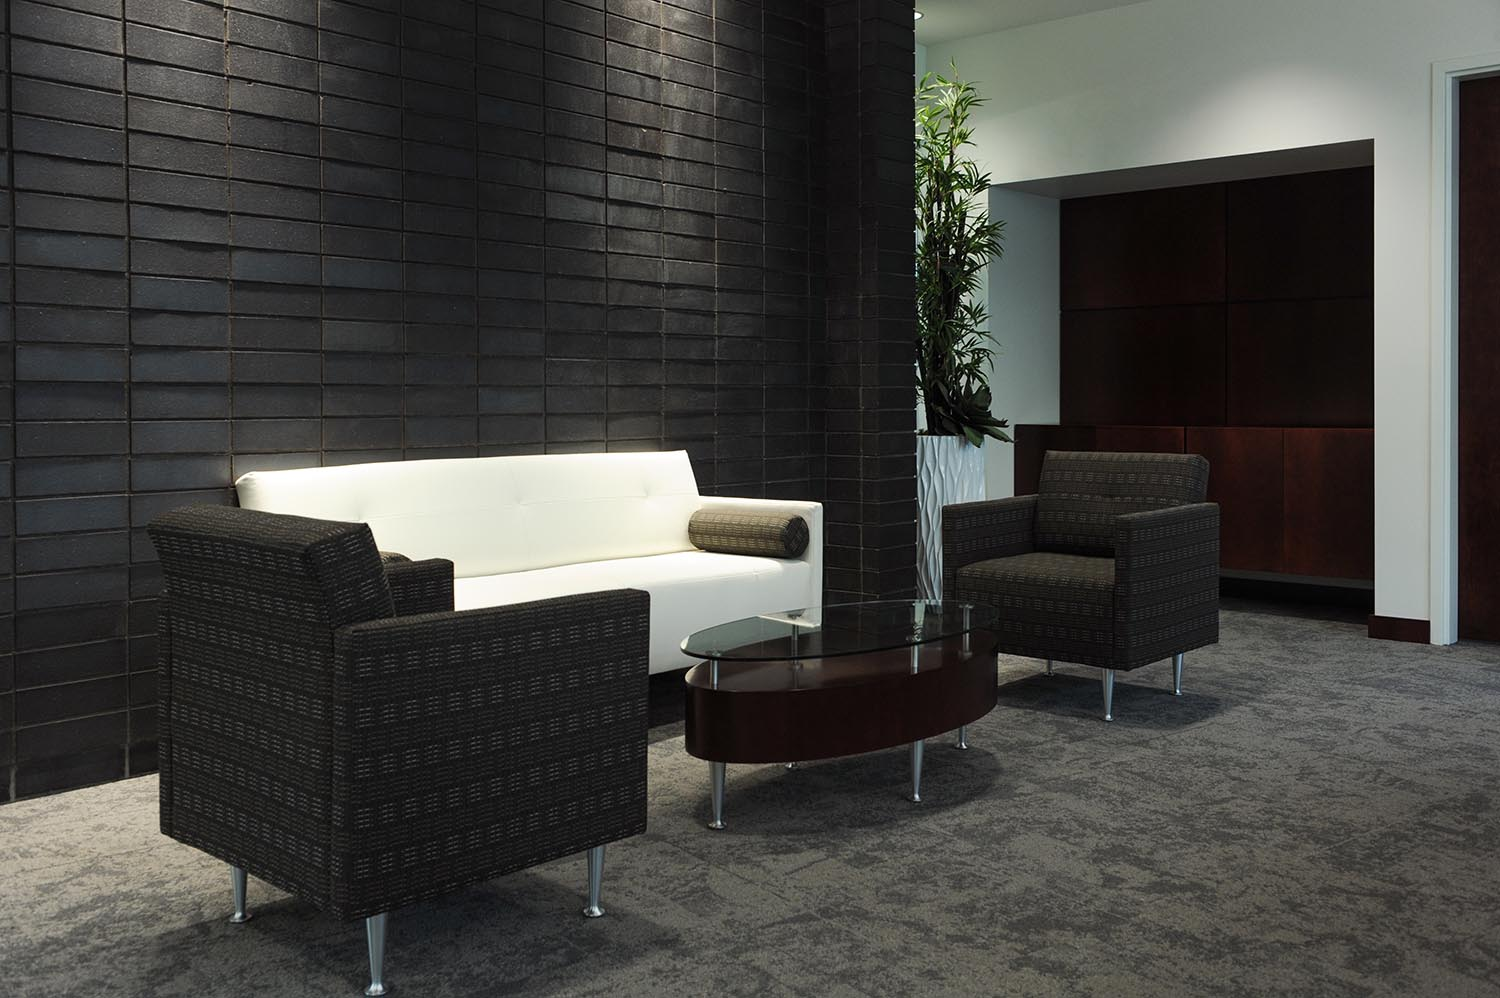 Entegra Credit Union, interior photo of sitting area / Photo: Joel Ross